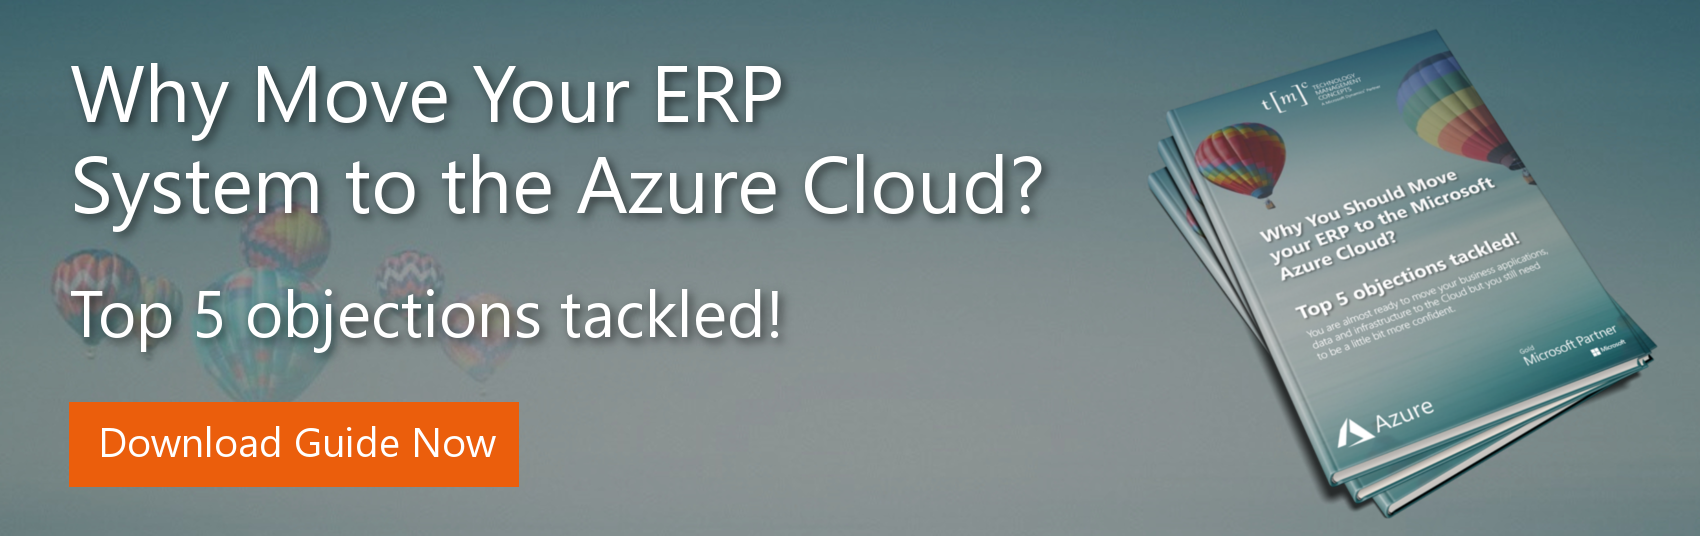 Why Should You Move Your ERP System to the Microsoft Azure Cloud?